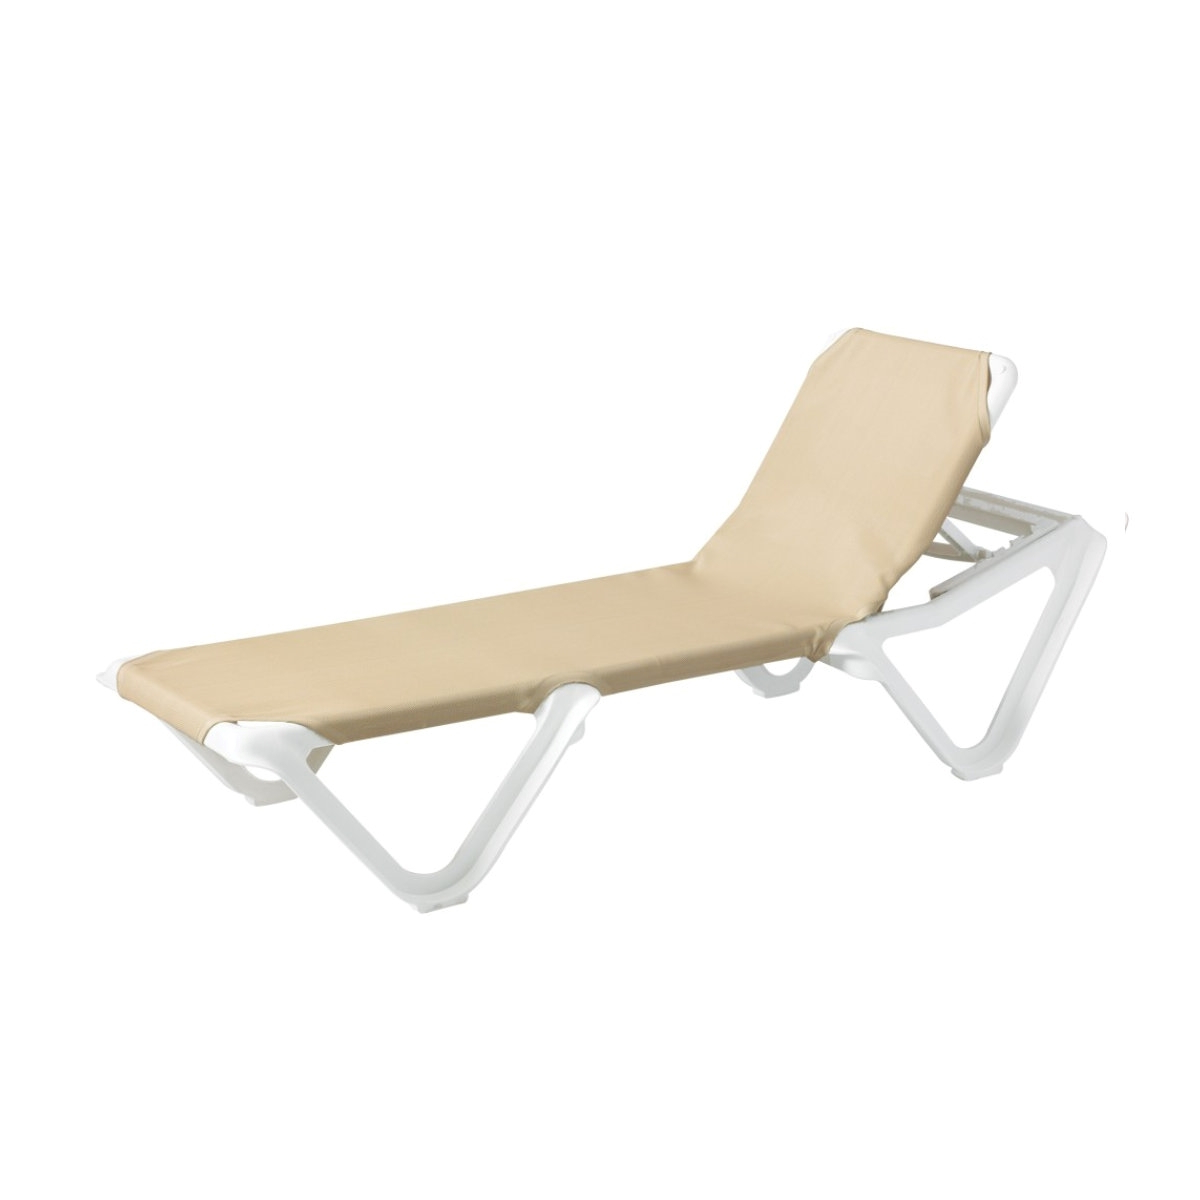 2019 Nautical Plastic Resin Sling Stackable Chaise Lounge, White Frame Pool Furniture, 35 Lbs (View 13 of 25)